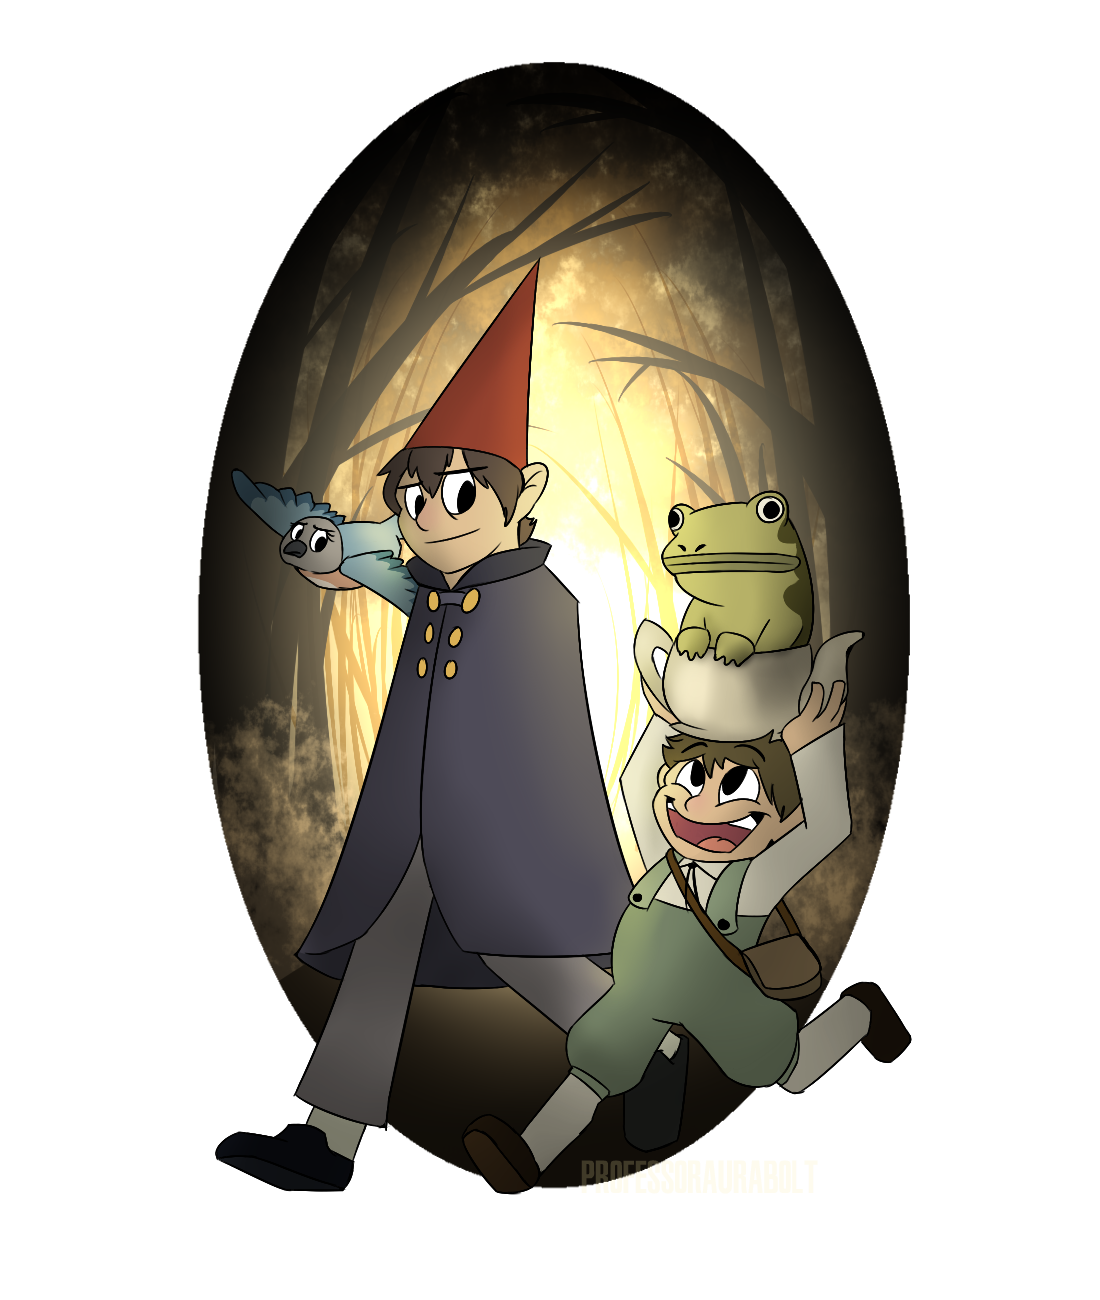 Over The Garden Wall Into The Unknown By Professoraurabolt On Deviantart